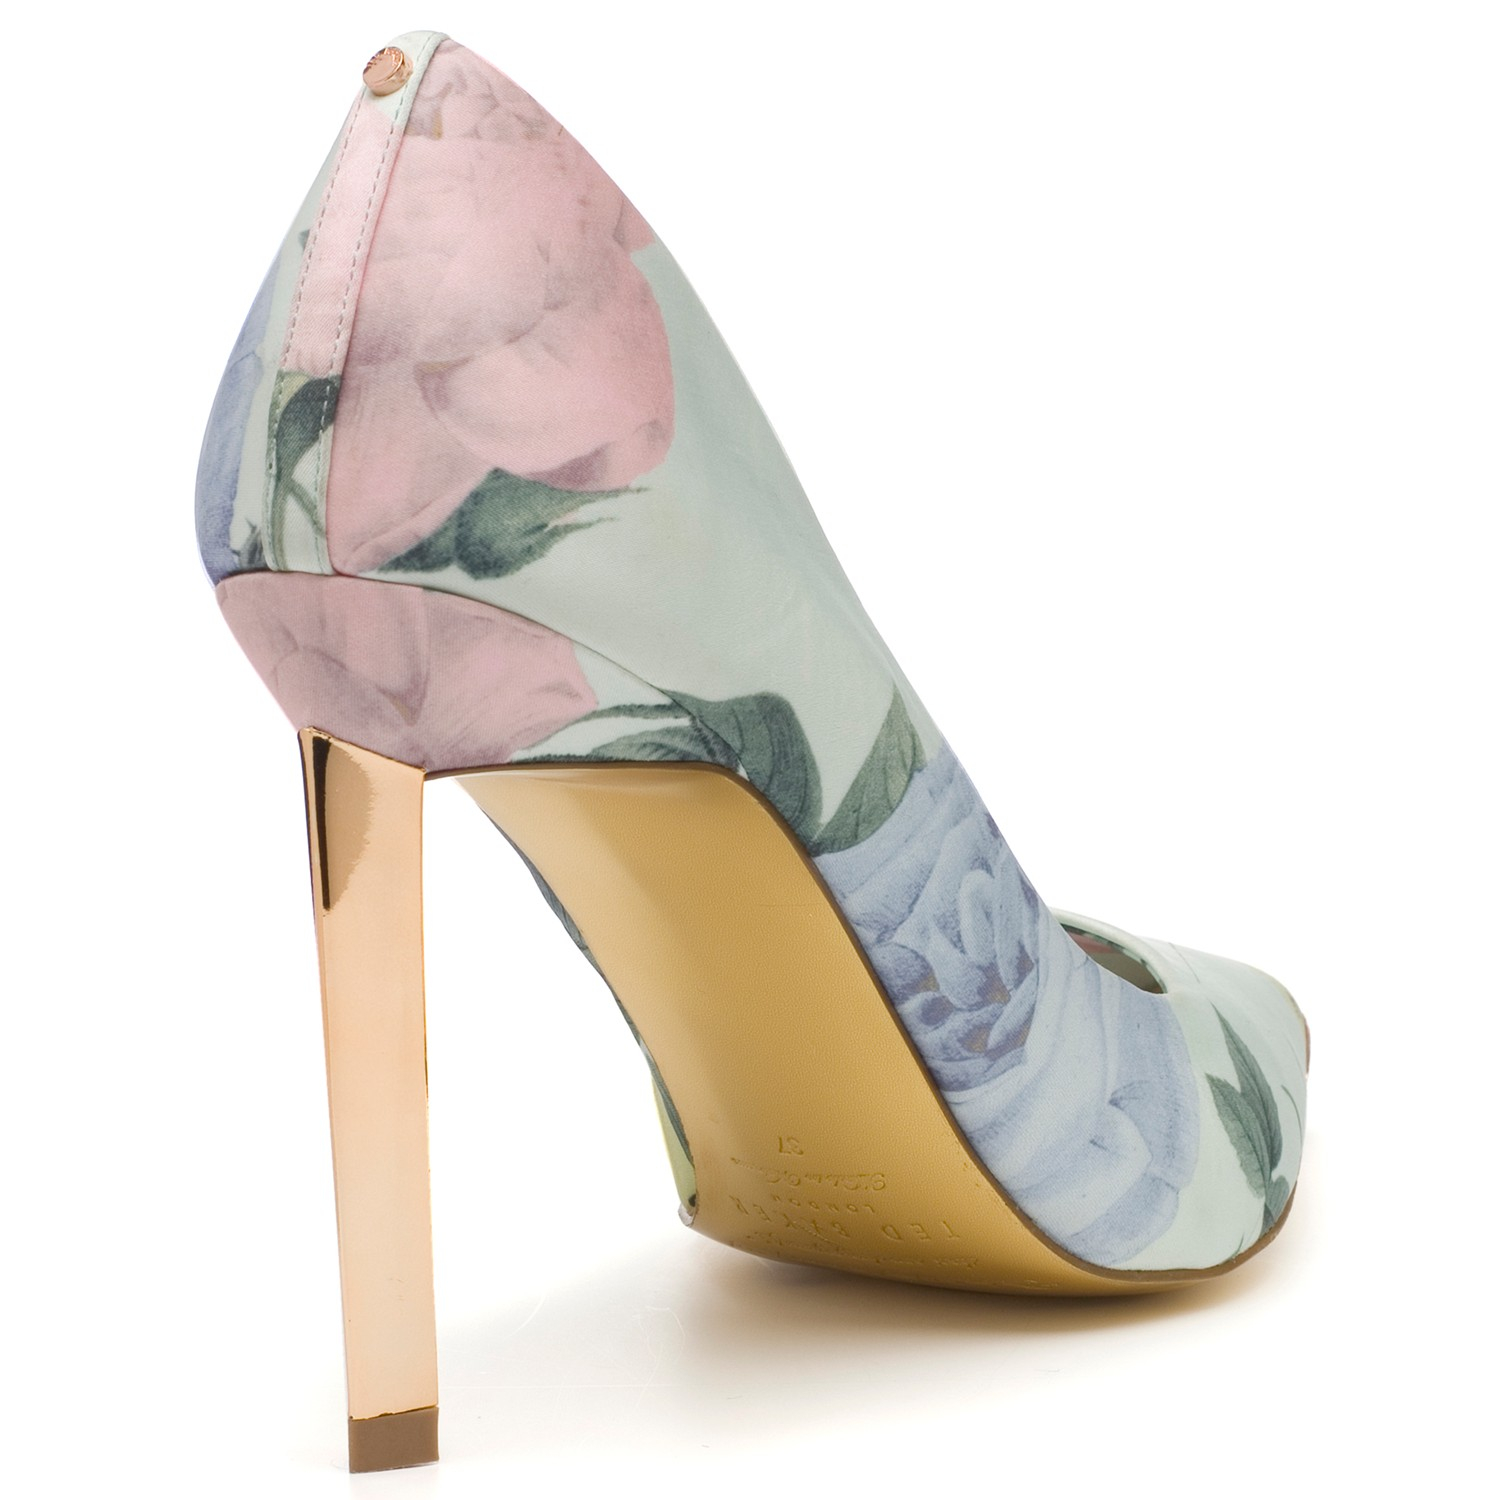 1c921bcd672214 Ted Baker Adecyn High Heeled Stiletto Court Shoes in Green - Lyst